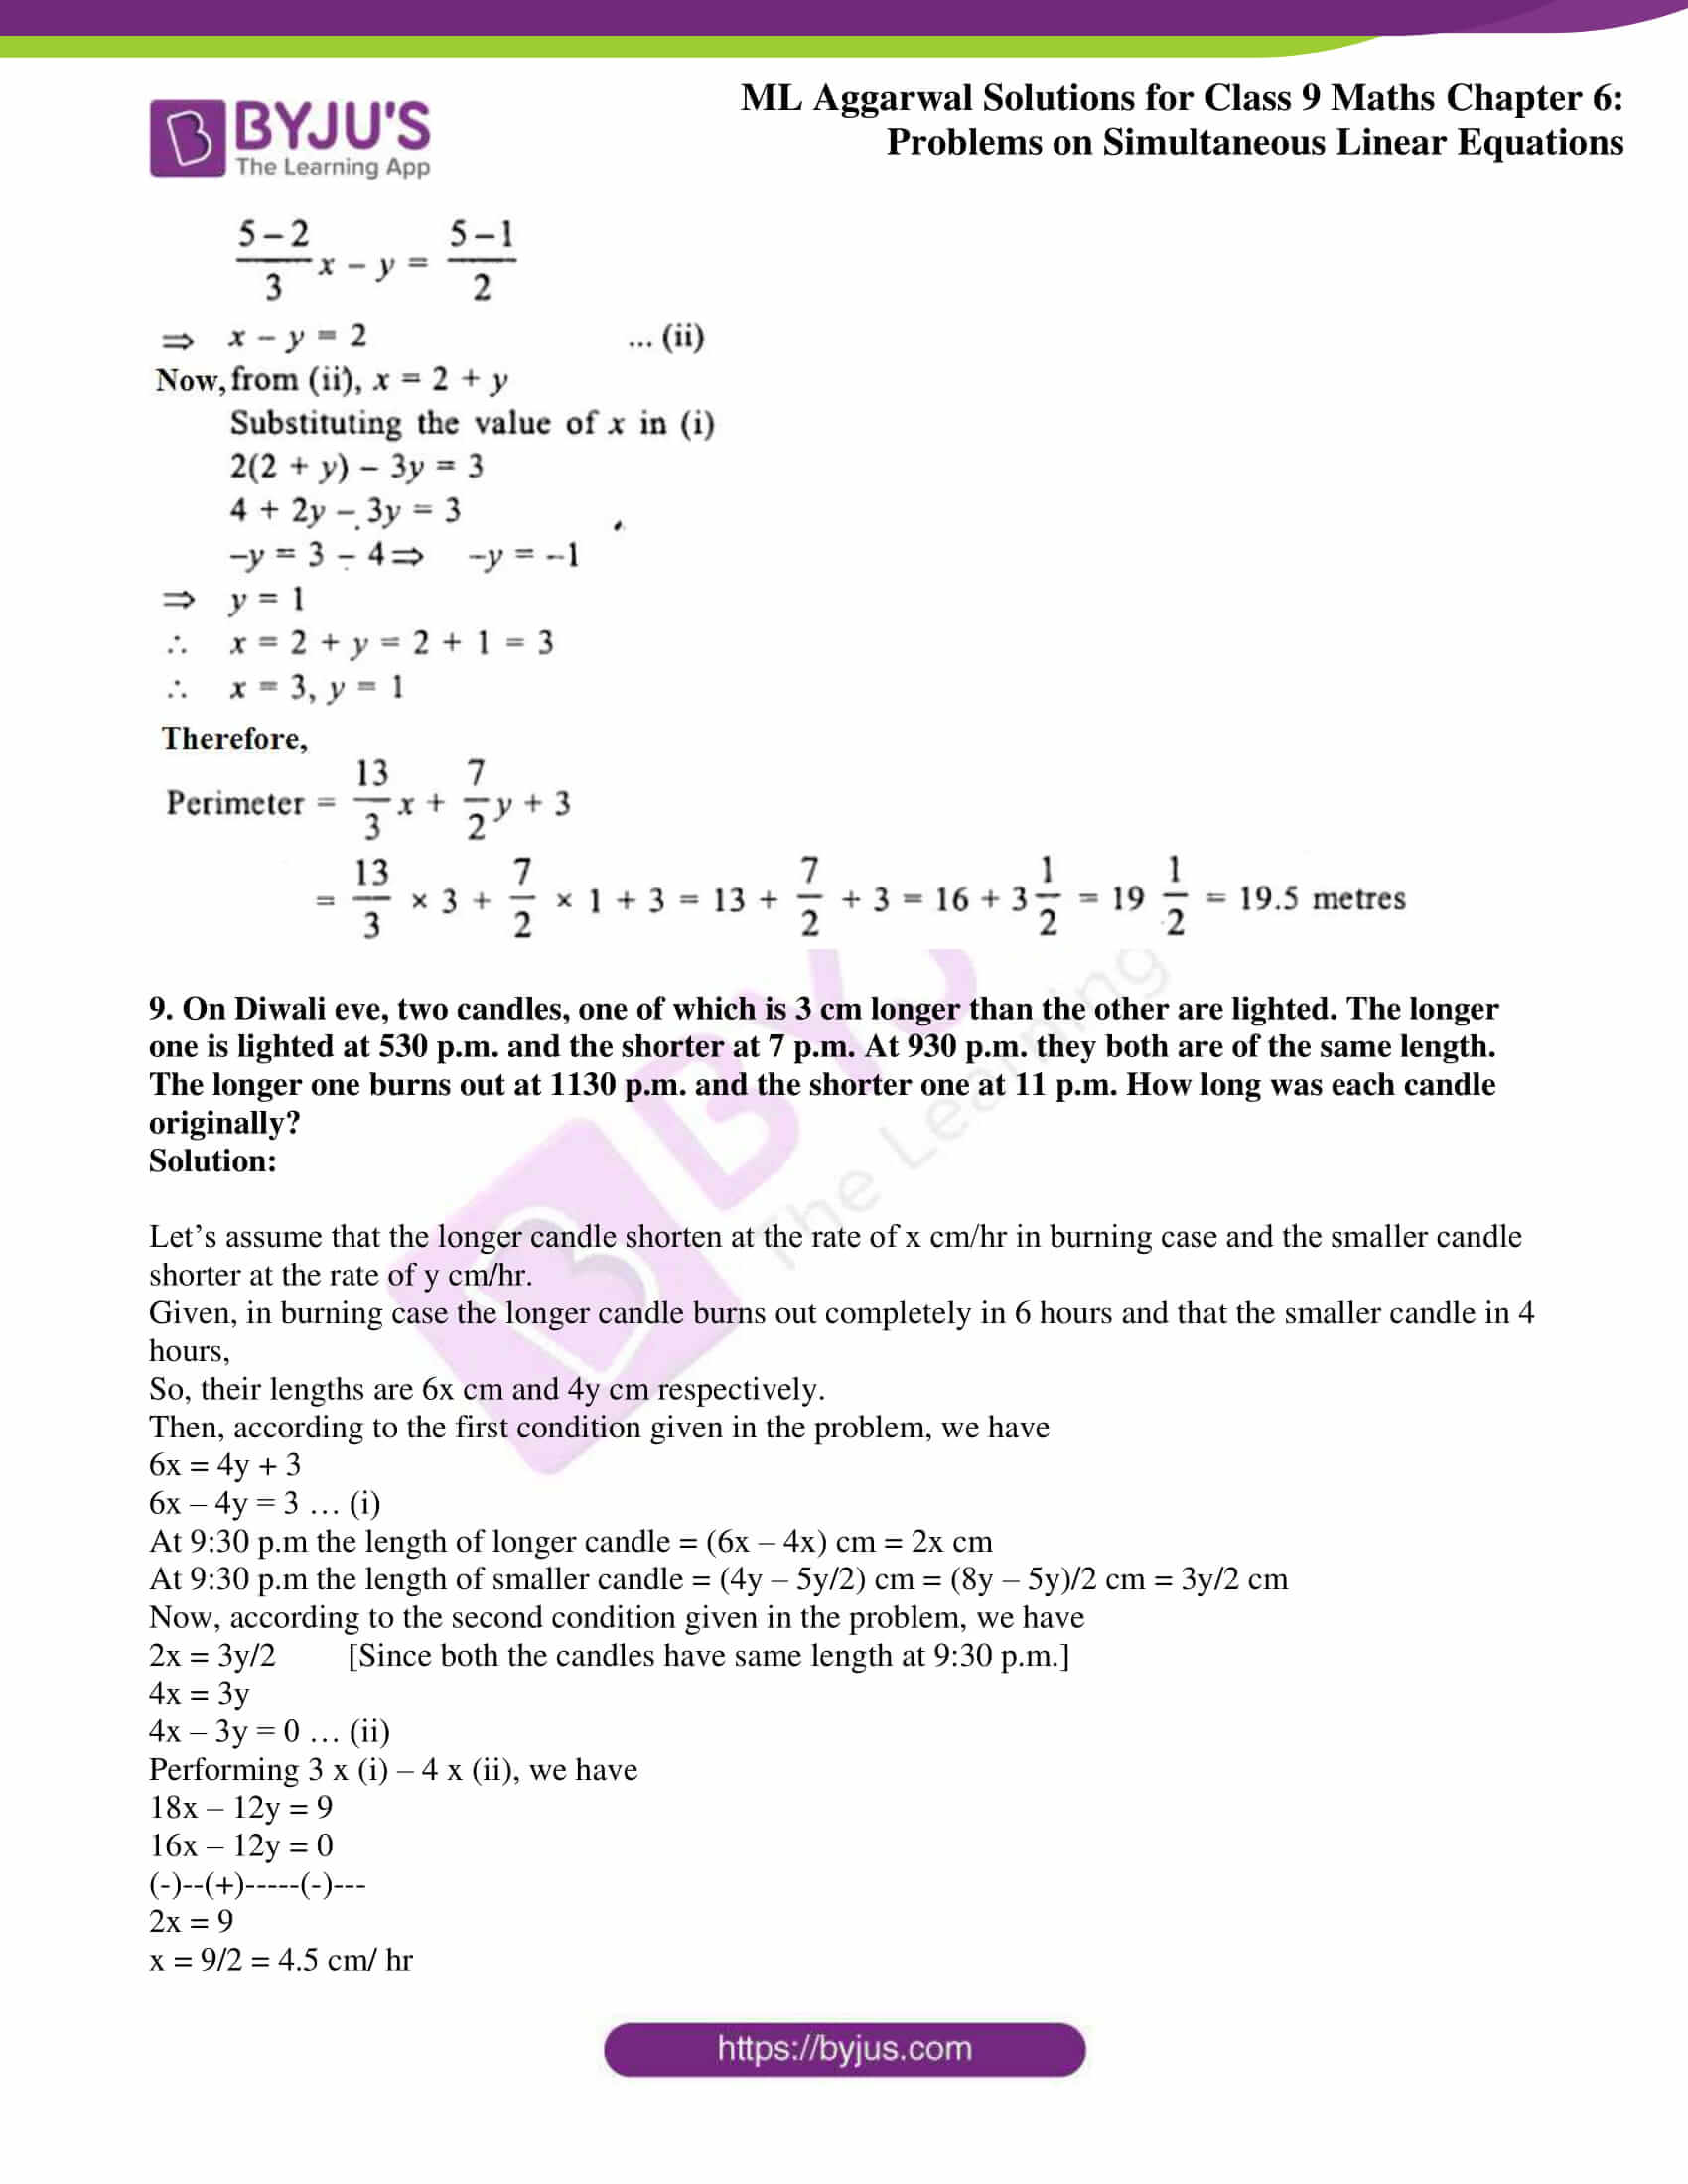 ml aggarwal solutions for class 9 maths chapter 6 26